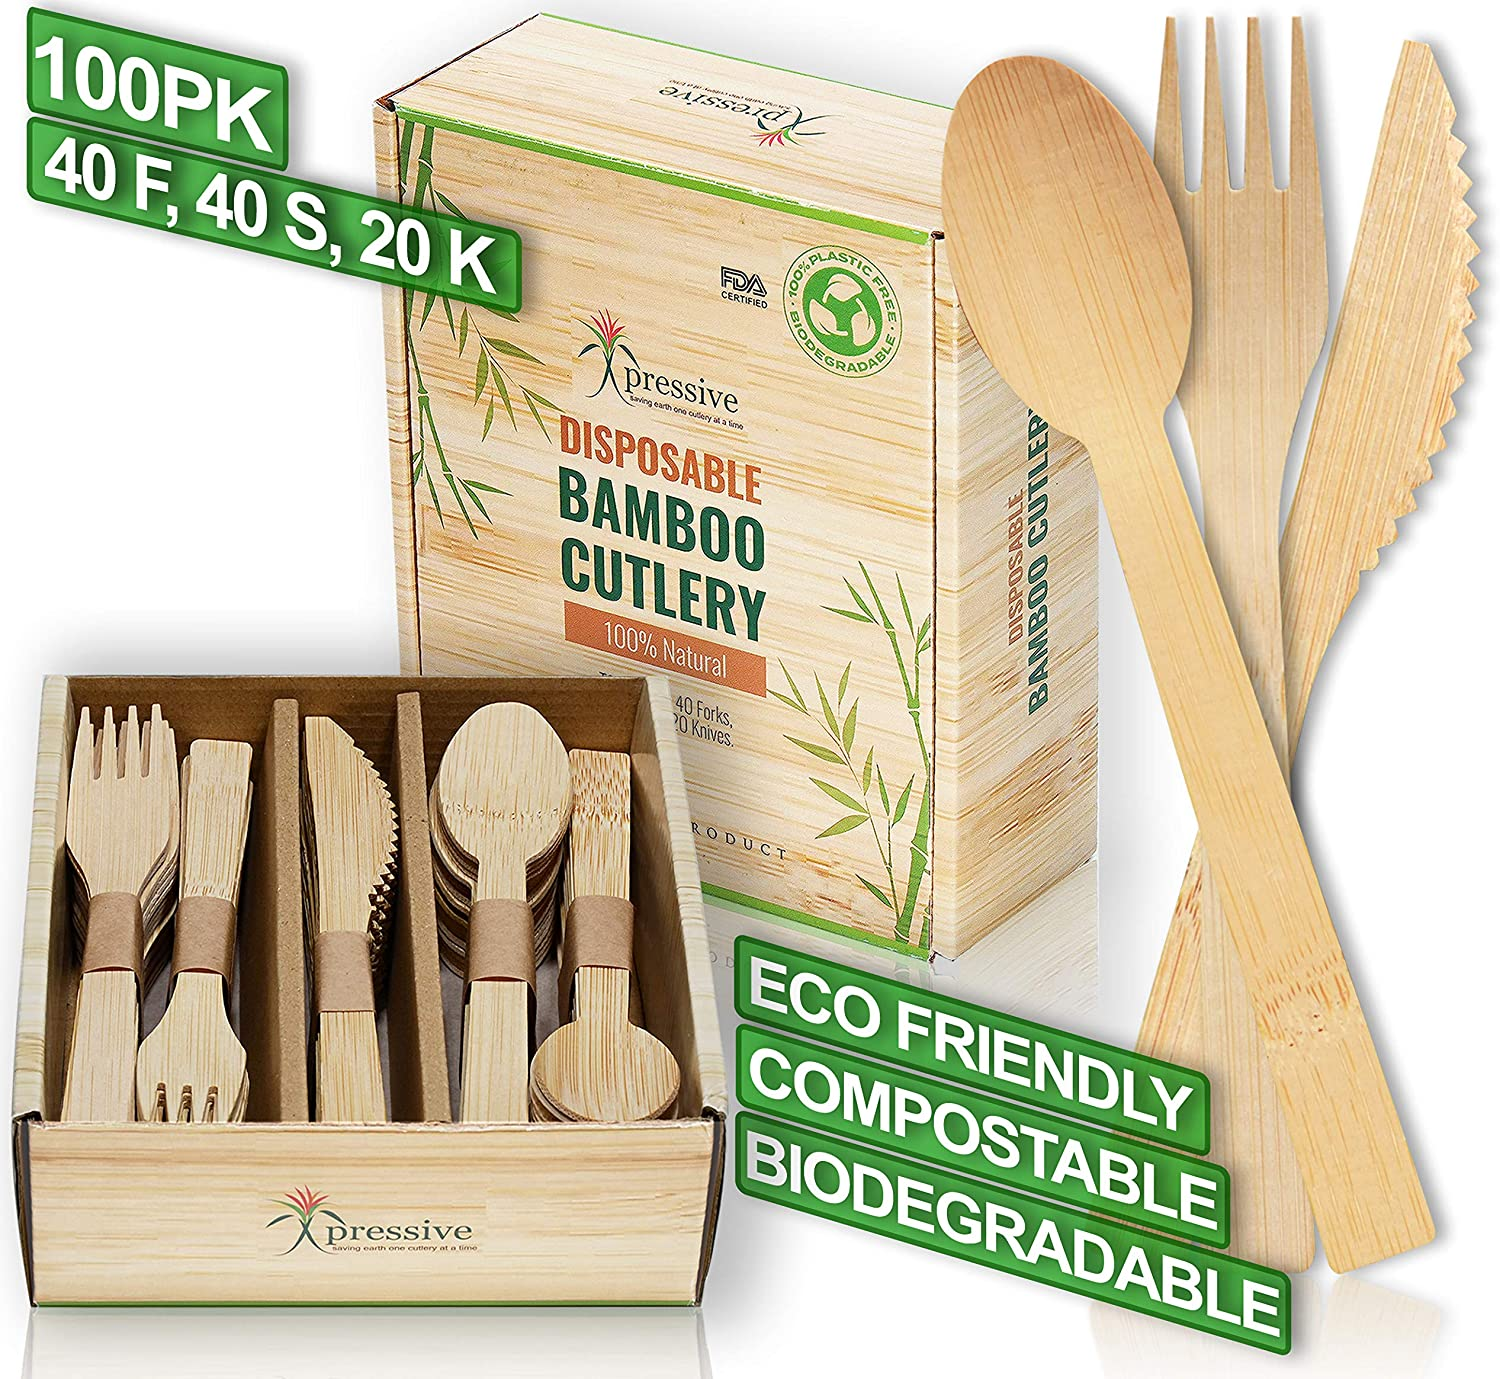 Bamboo Disposable Cutlery Set 100pk 40 Fork 40 Spoon 20 Knife Eco Friendly Natural Compostable Biodegradable Utensils Premium Organic Sustainable Reusable Alternate To Plastic Pla Wooden